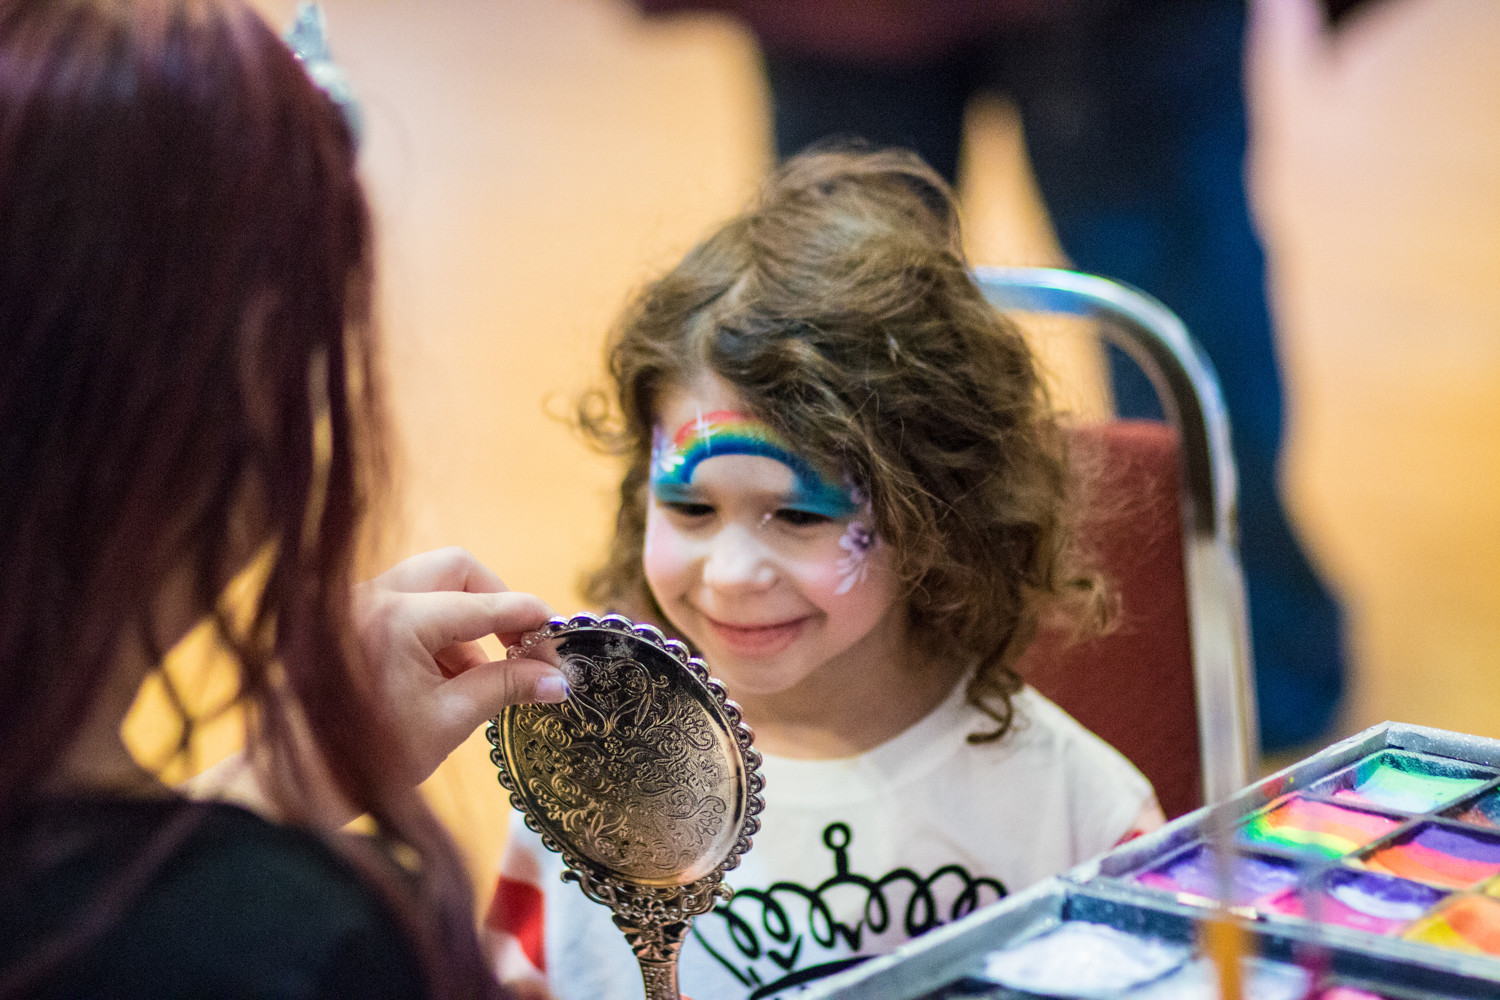 After getting a rainbow painted on her face at the carnival, a young girl smiles at her reflection in a small handheld mirror.